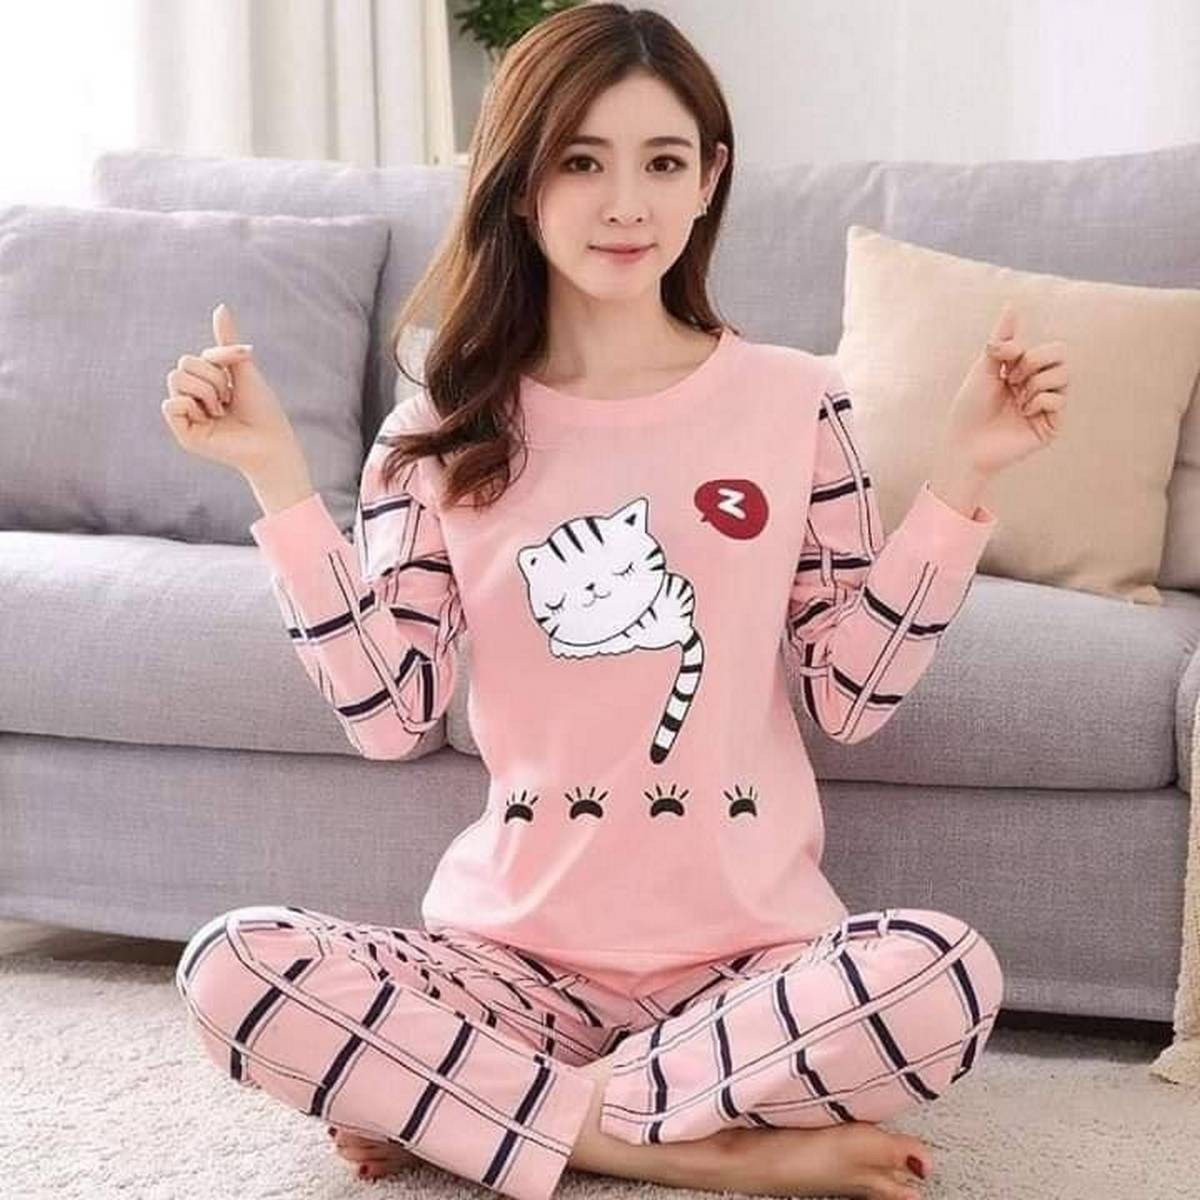 Sleeping Cat Printed Cotton Jersey Ladies Sleep Dress Night Wear with Shirt and Trouser (Complete Sleeping Suit) For Women and Girls